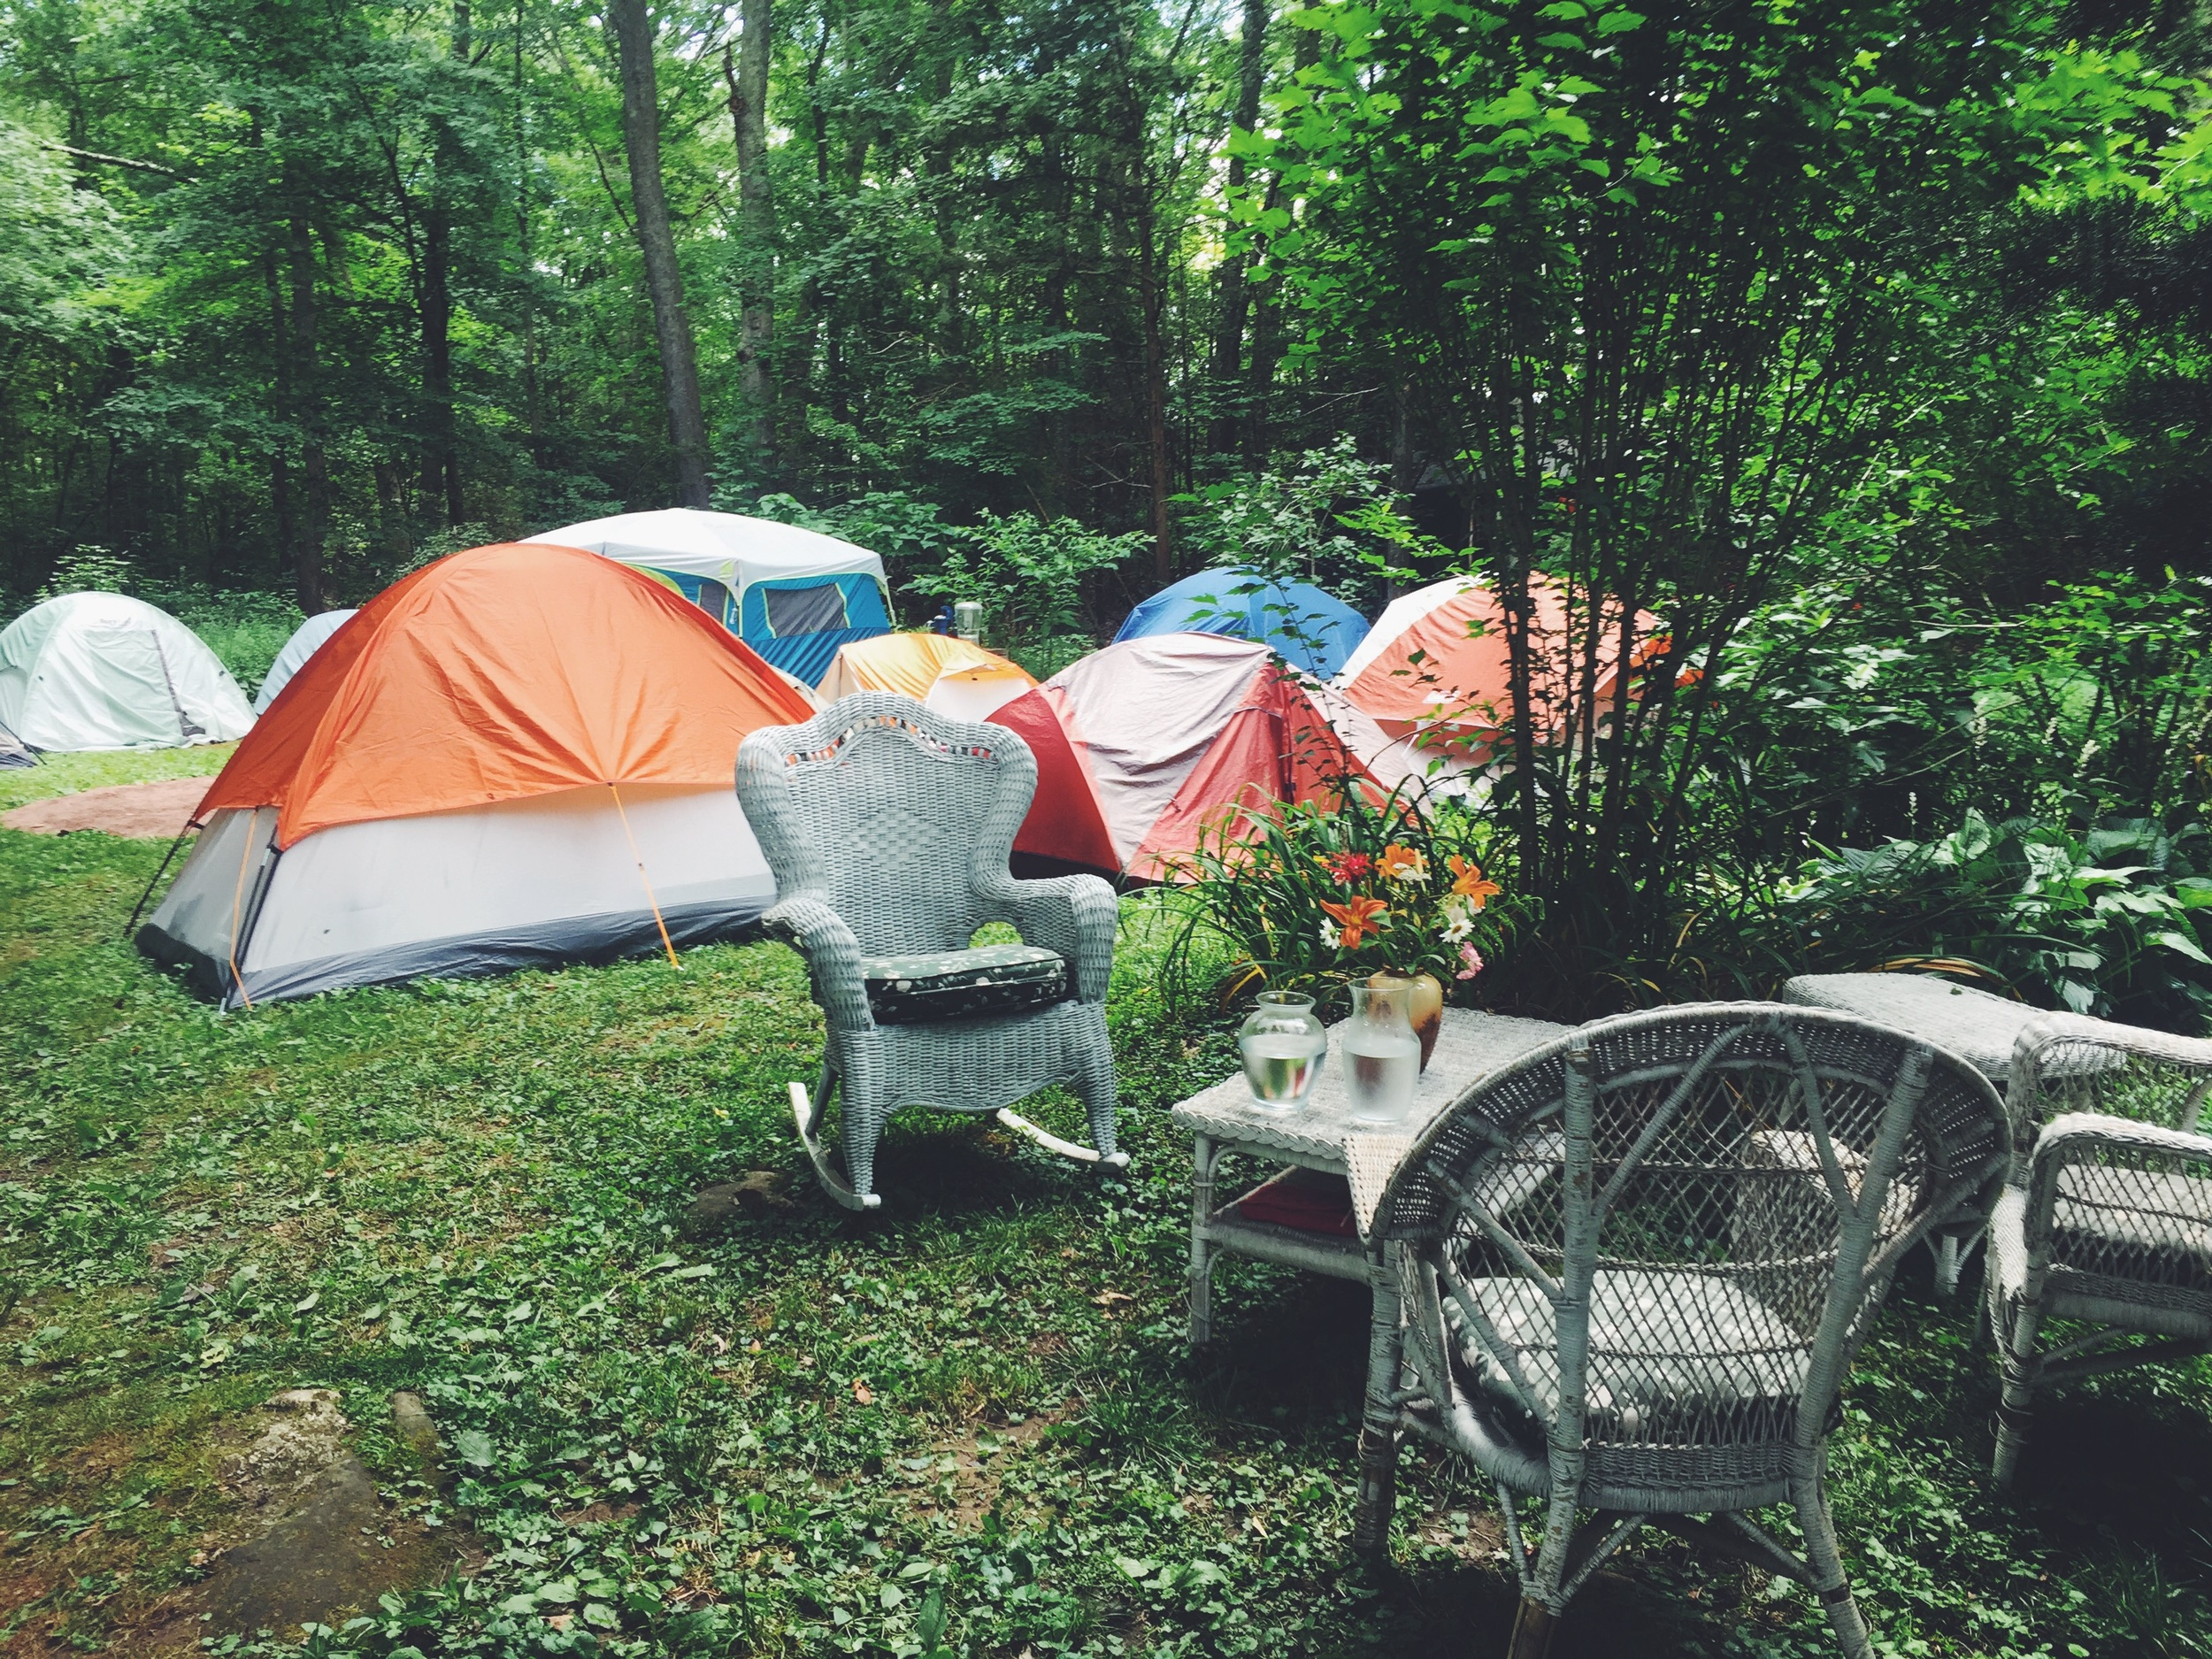 The residents' tents